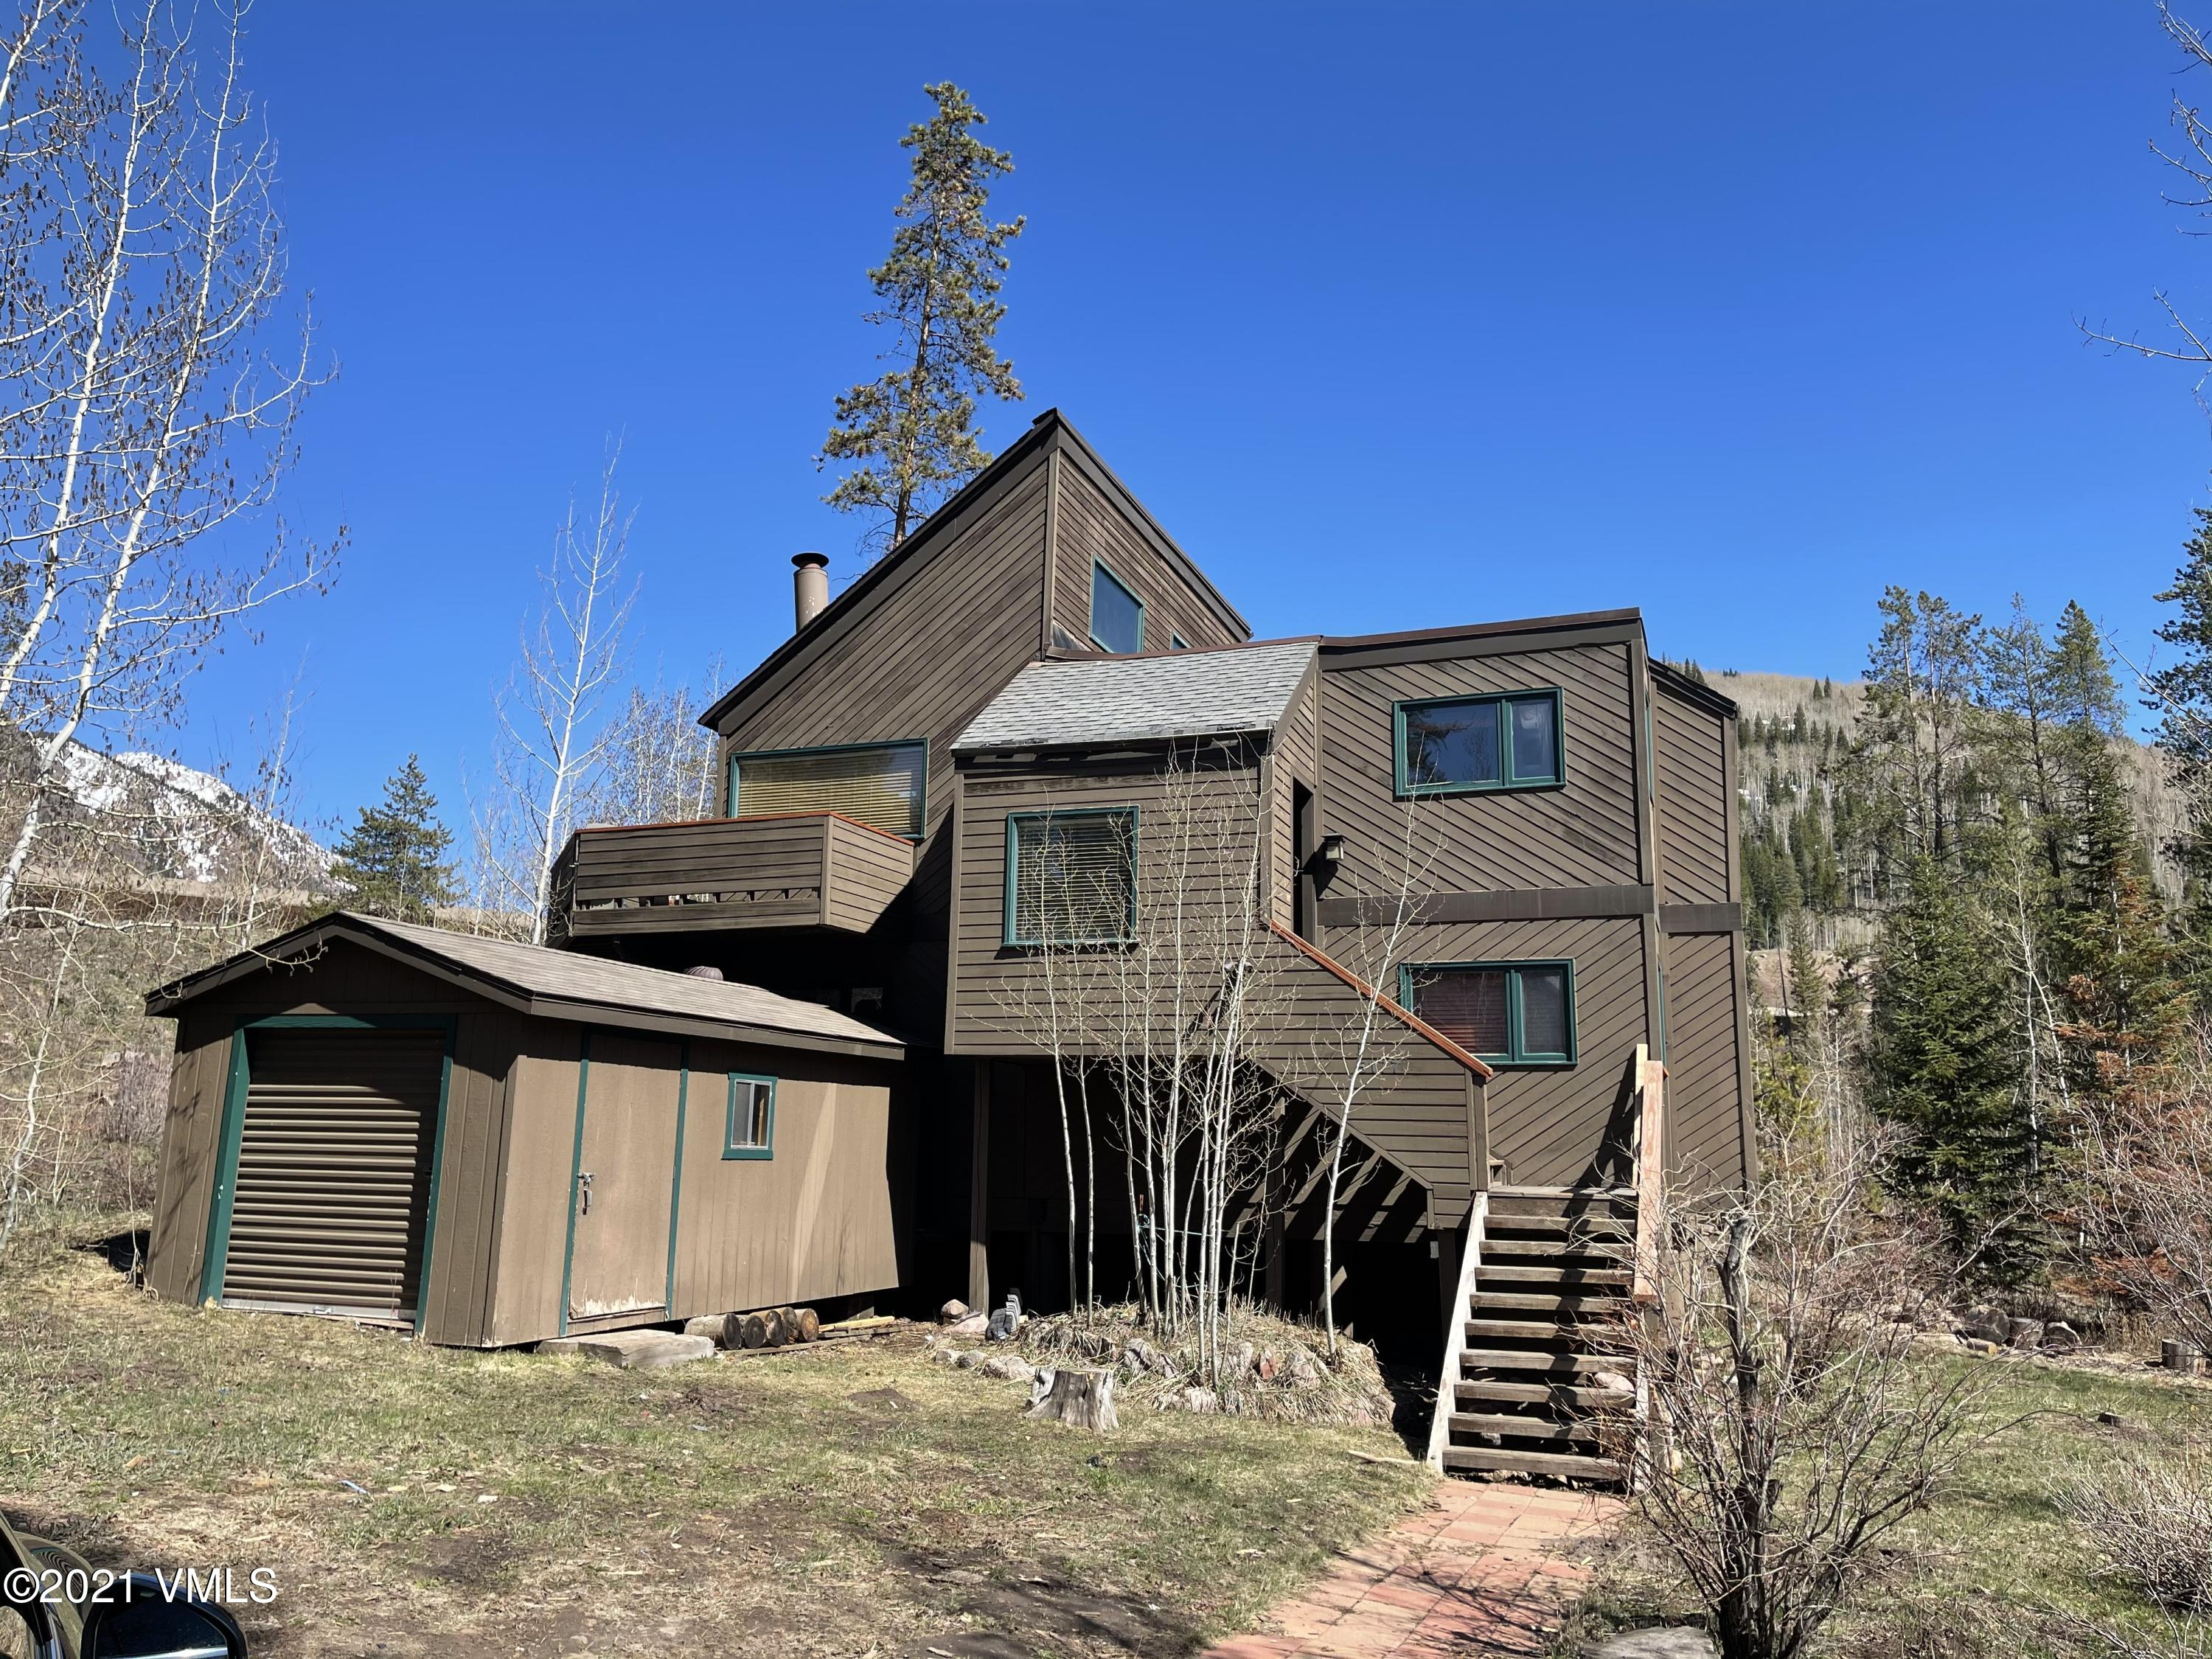 Rare find in East Vail.  This home is situated across the street from the Bighorn Trailhead, offers waterfall views, steps from bus route all in a quiet neighborhood. Existing home makes great 2nd home or rental.  Dream home plans are available that have been approved by the Town of Vail. Can be permit ready.  Interested parties may request plans for new custom home with pool.  Also new custom home makes great 2nd home and/or rental.